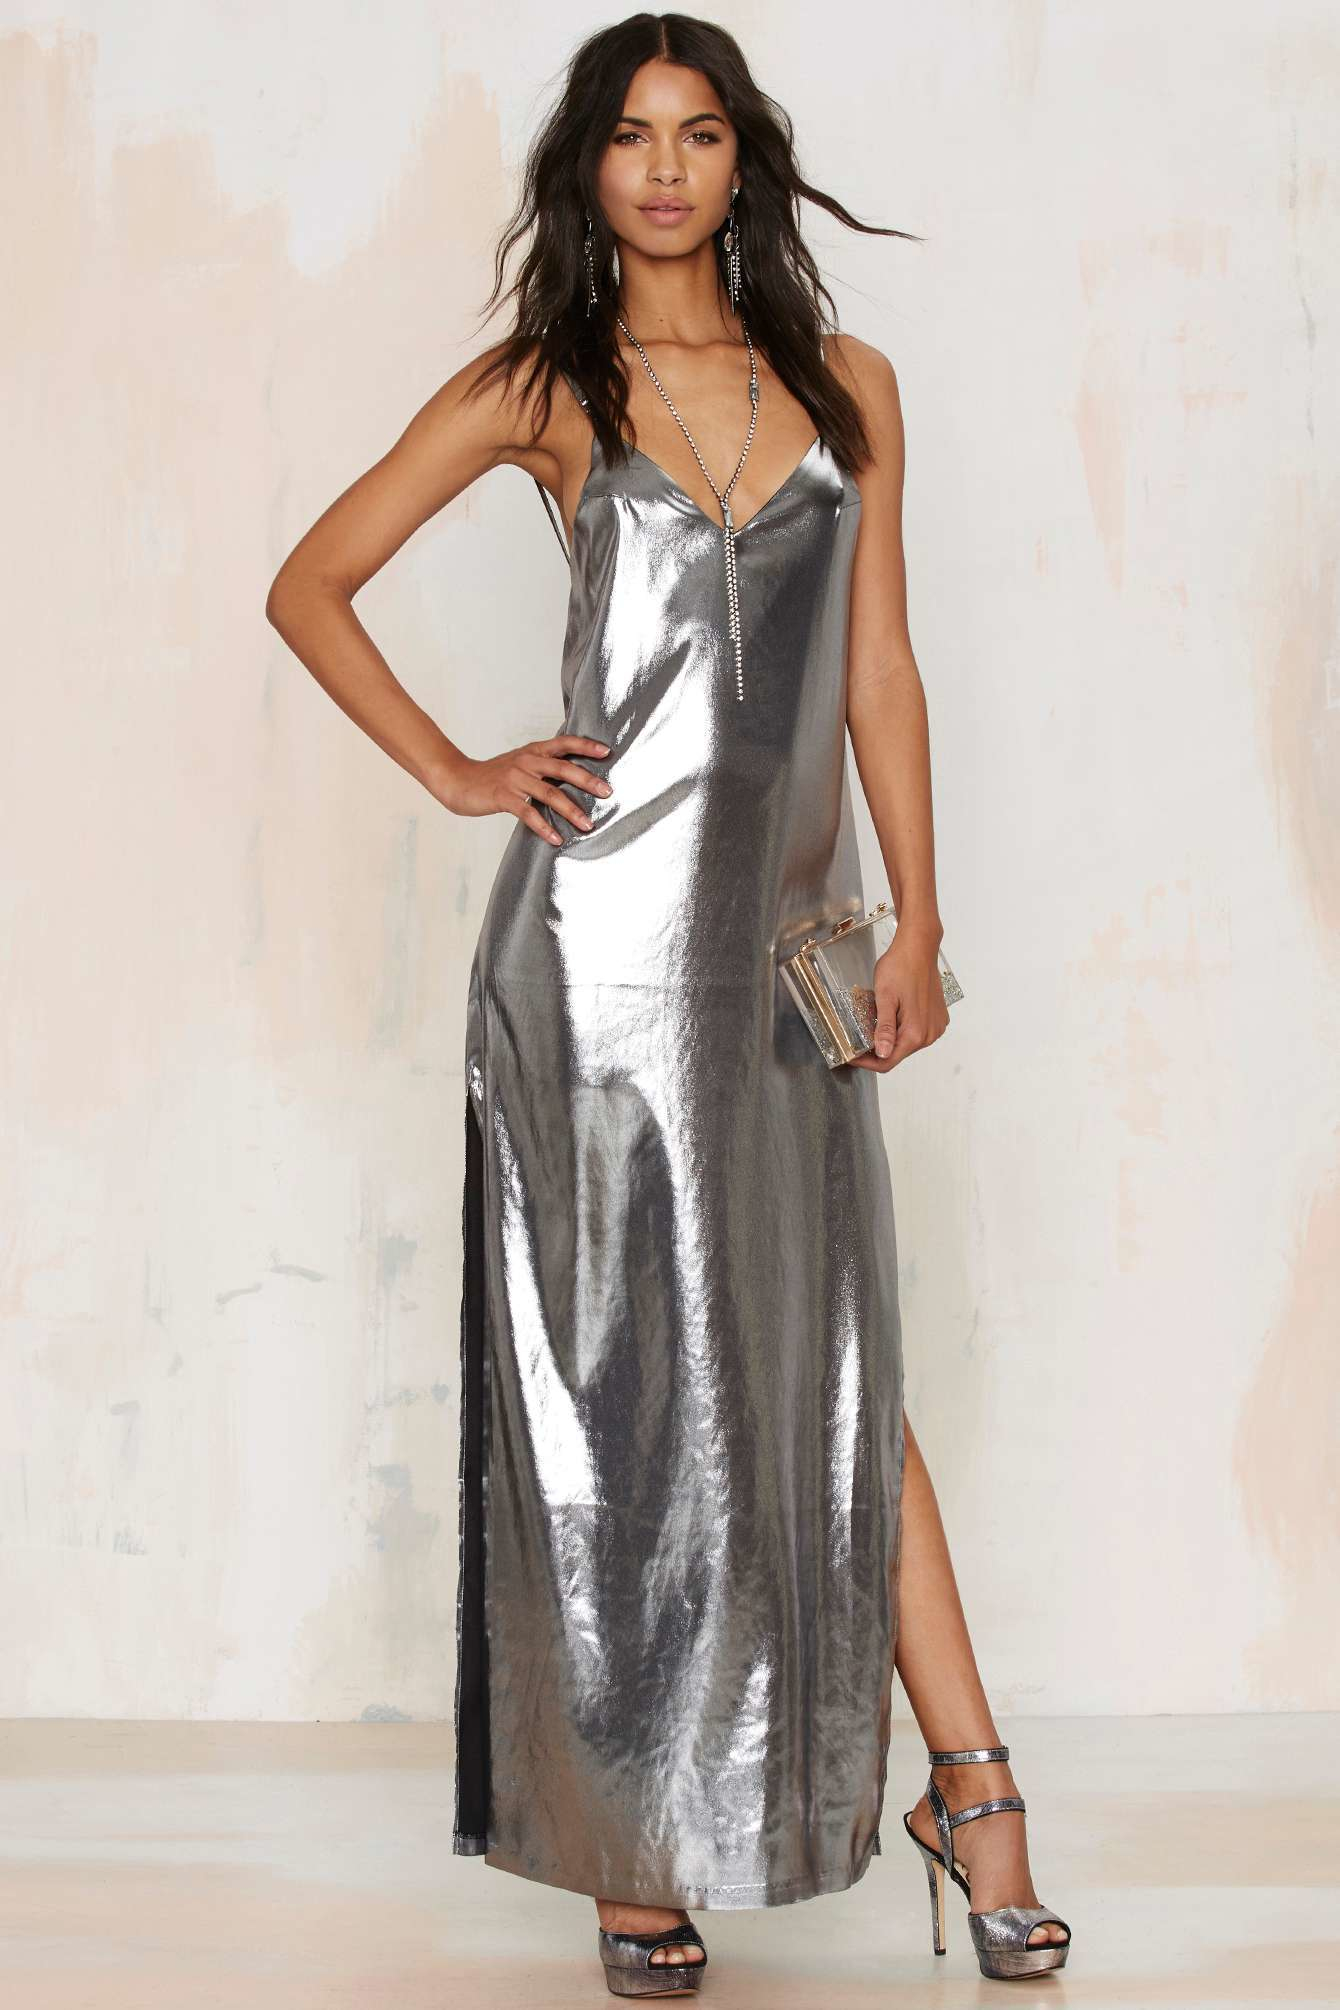 Free shipping BOTH ways on metallic dresses, from our vast selection of styles. Fast delivery, and 24/7/ real-person service with a smile. Click or call